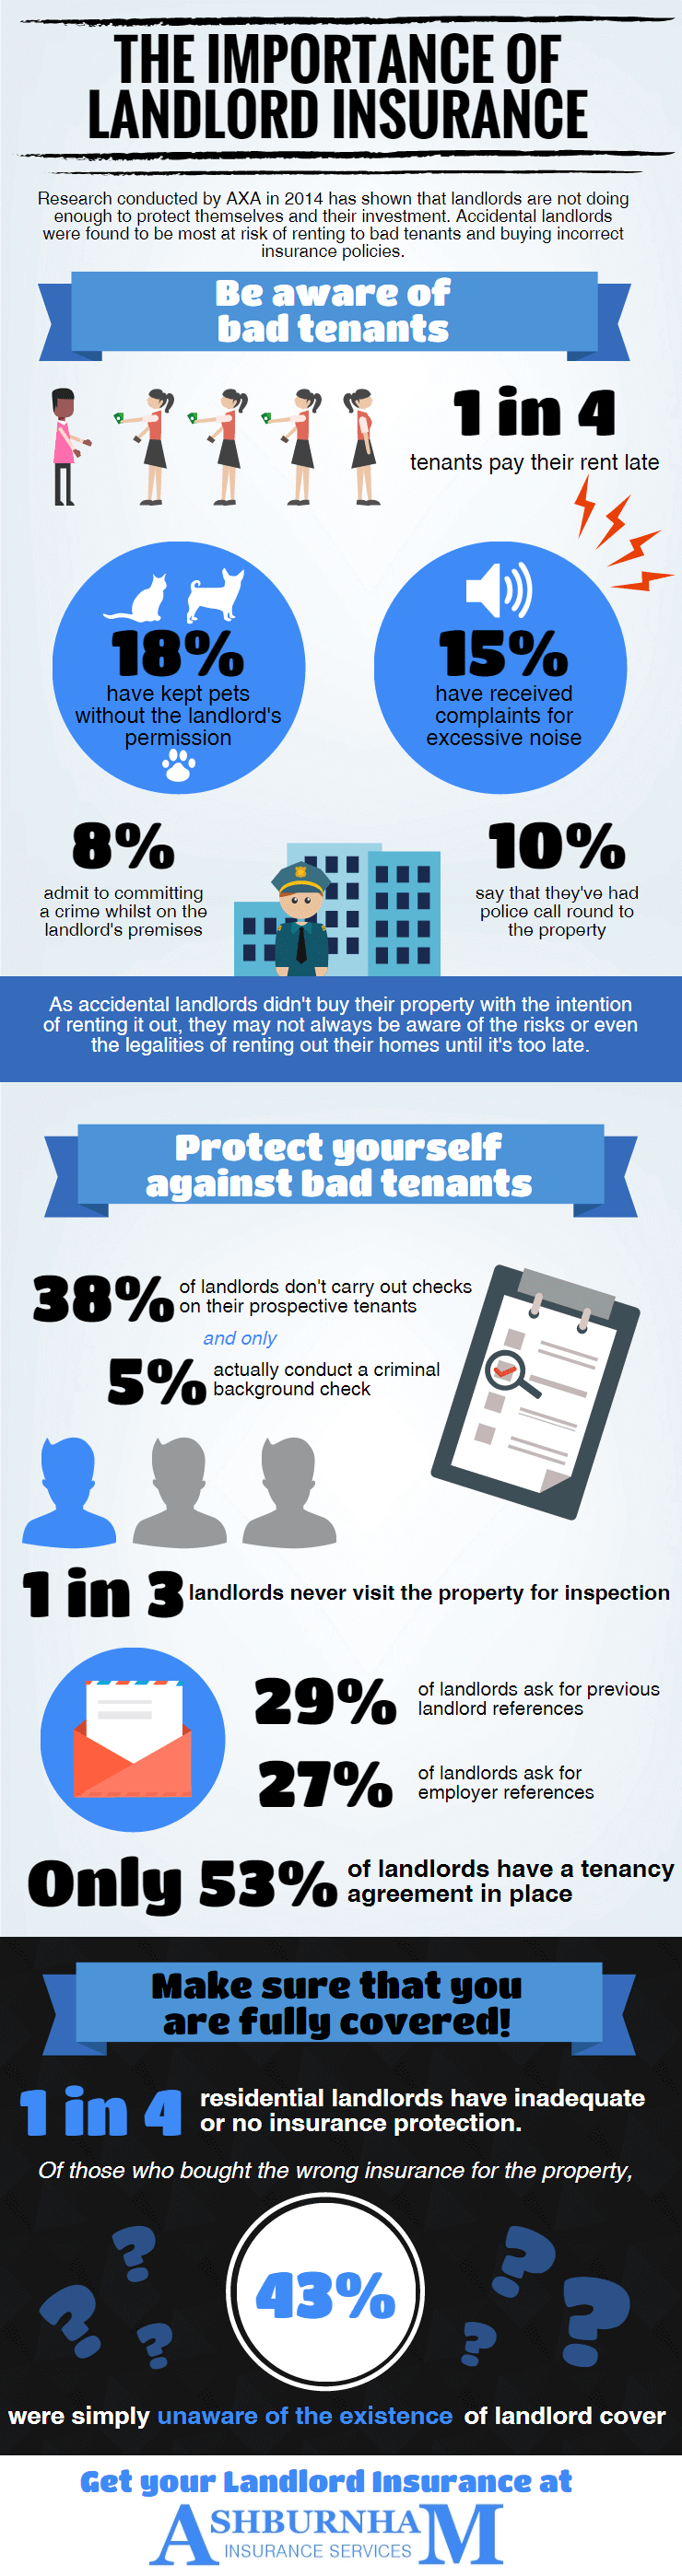 Landlord Insurance Quote The Importance Of Landlord Insurance Infographic  Ashburnham